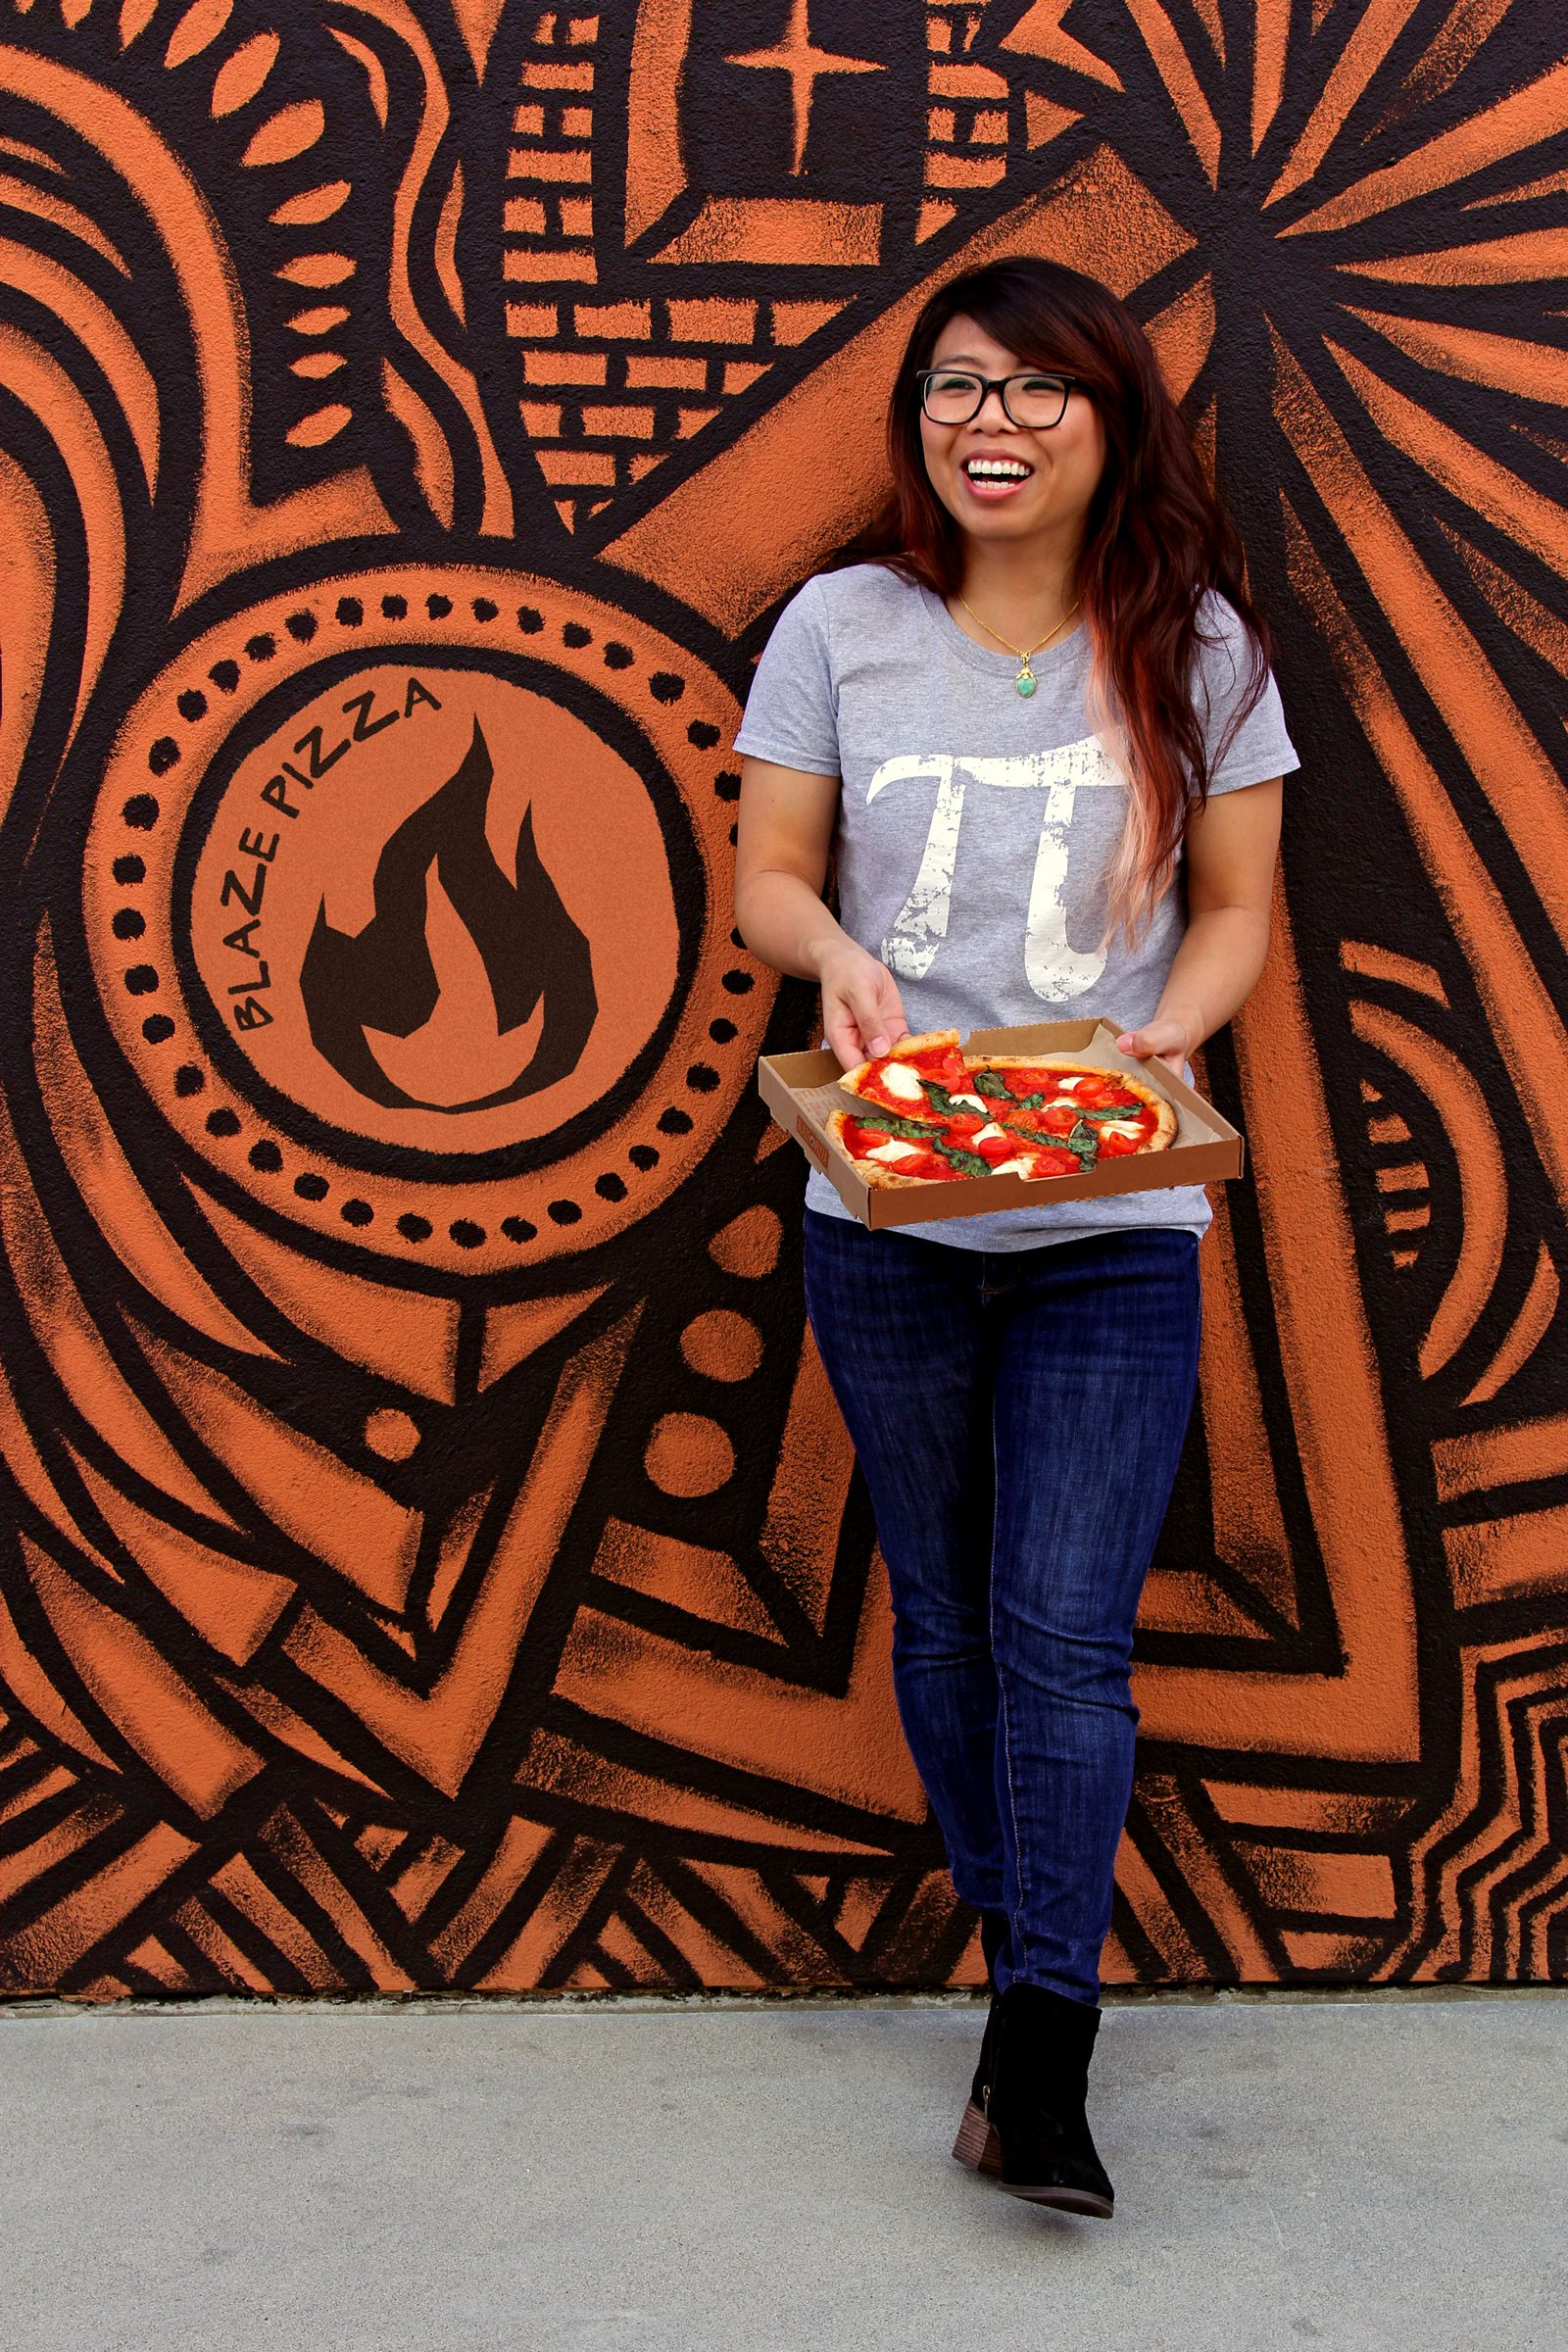 Blaze Fast-Fire'd Pizza Celebrates Annual Pi Day with $3.14 Pizzas on Thursday, March 14th